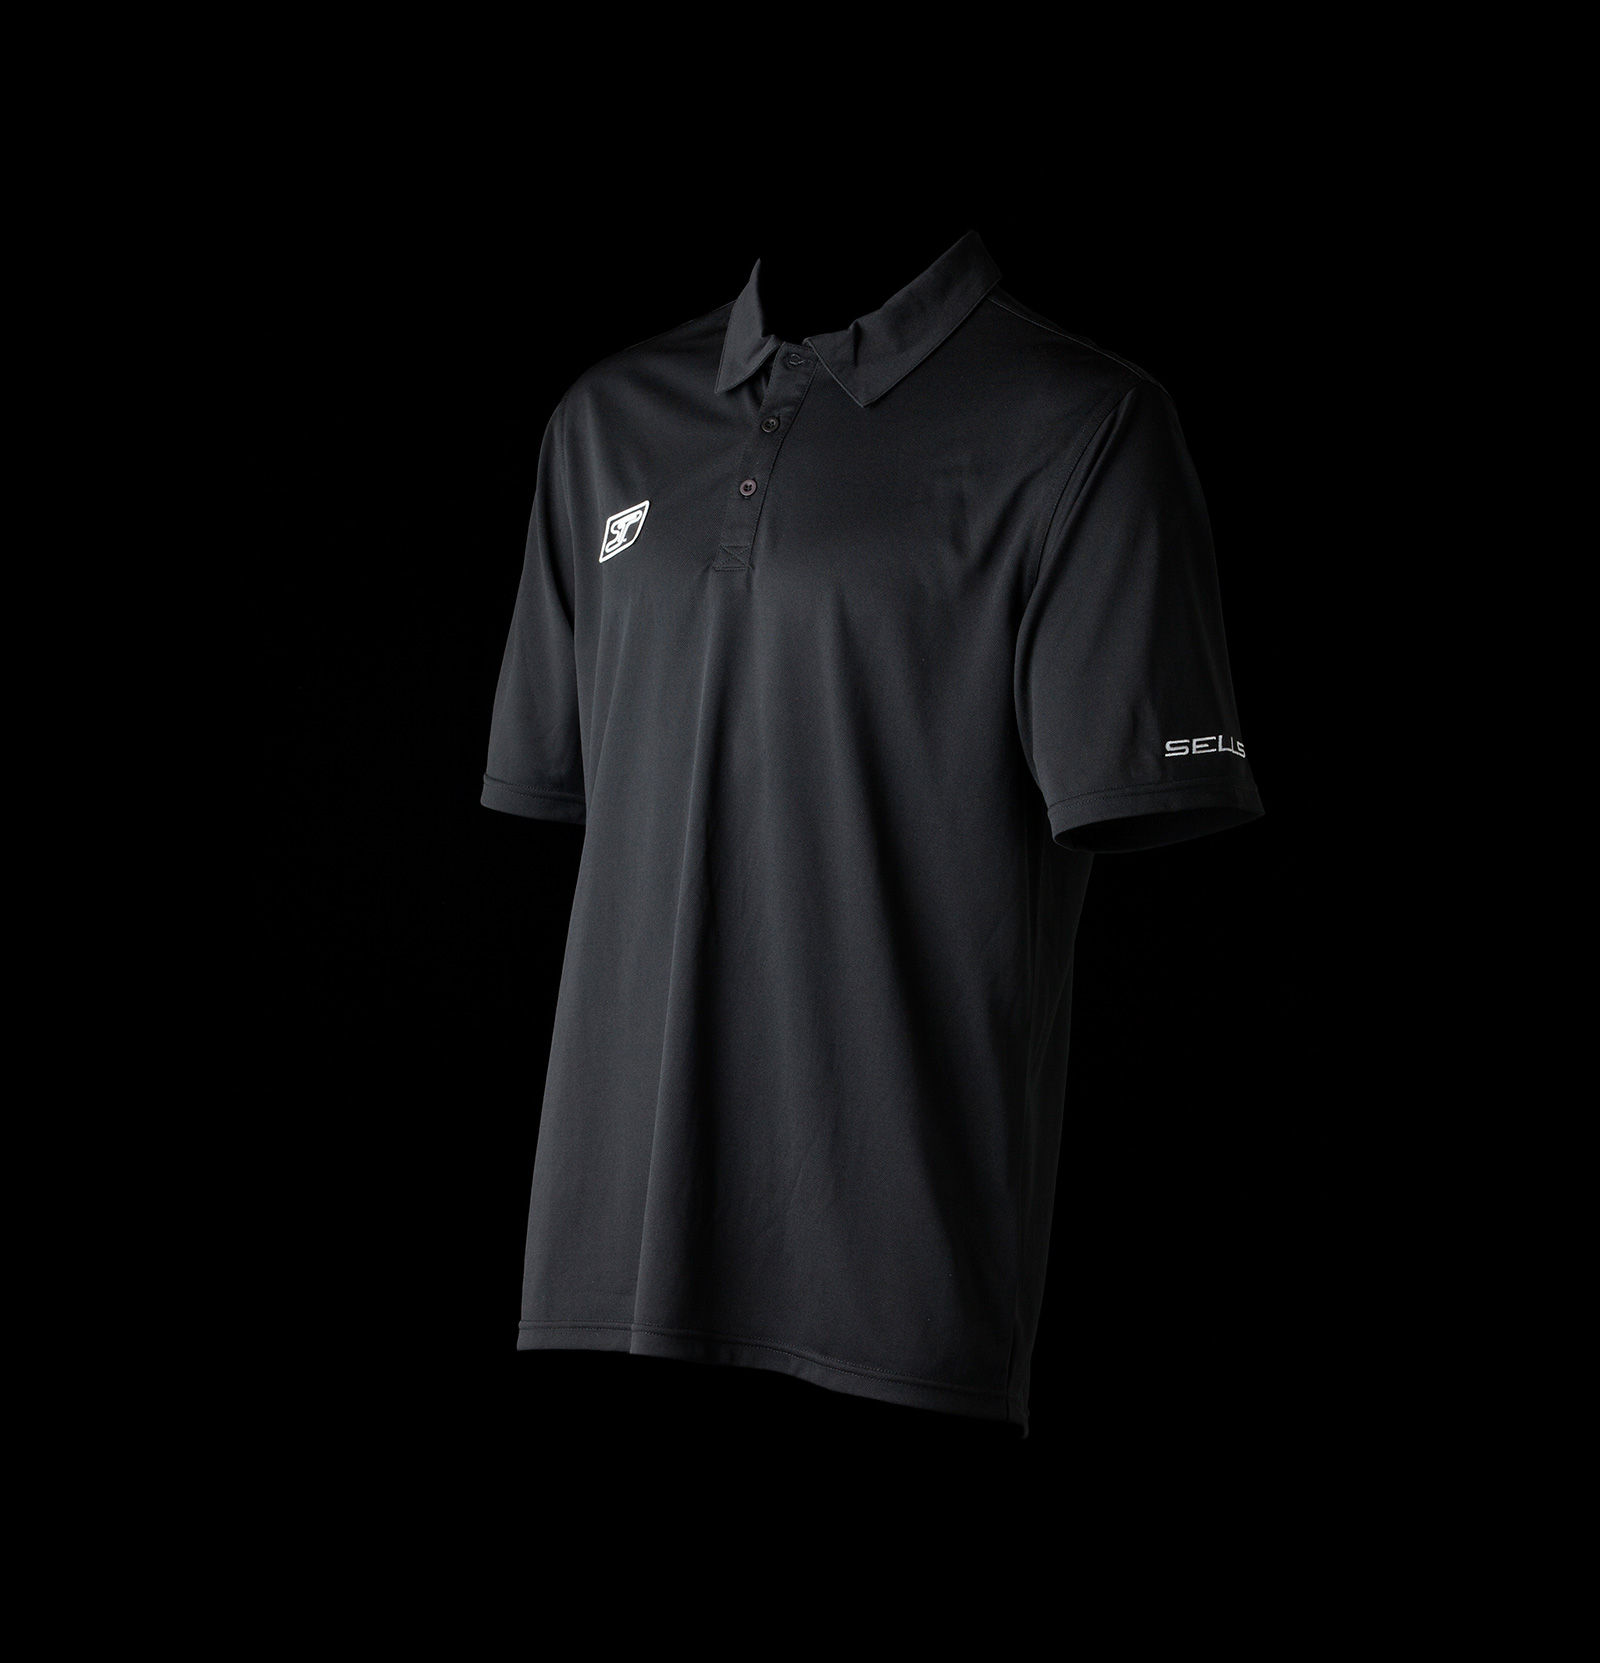 Excel-Polo-Shirt-Promo-09